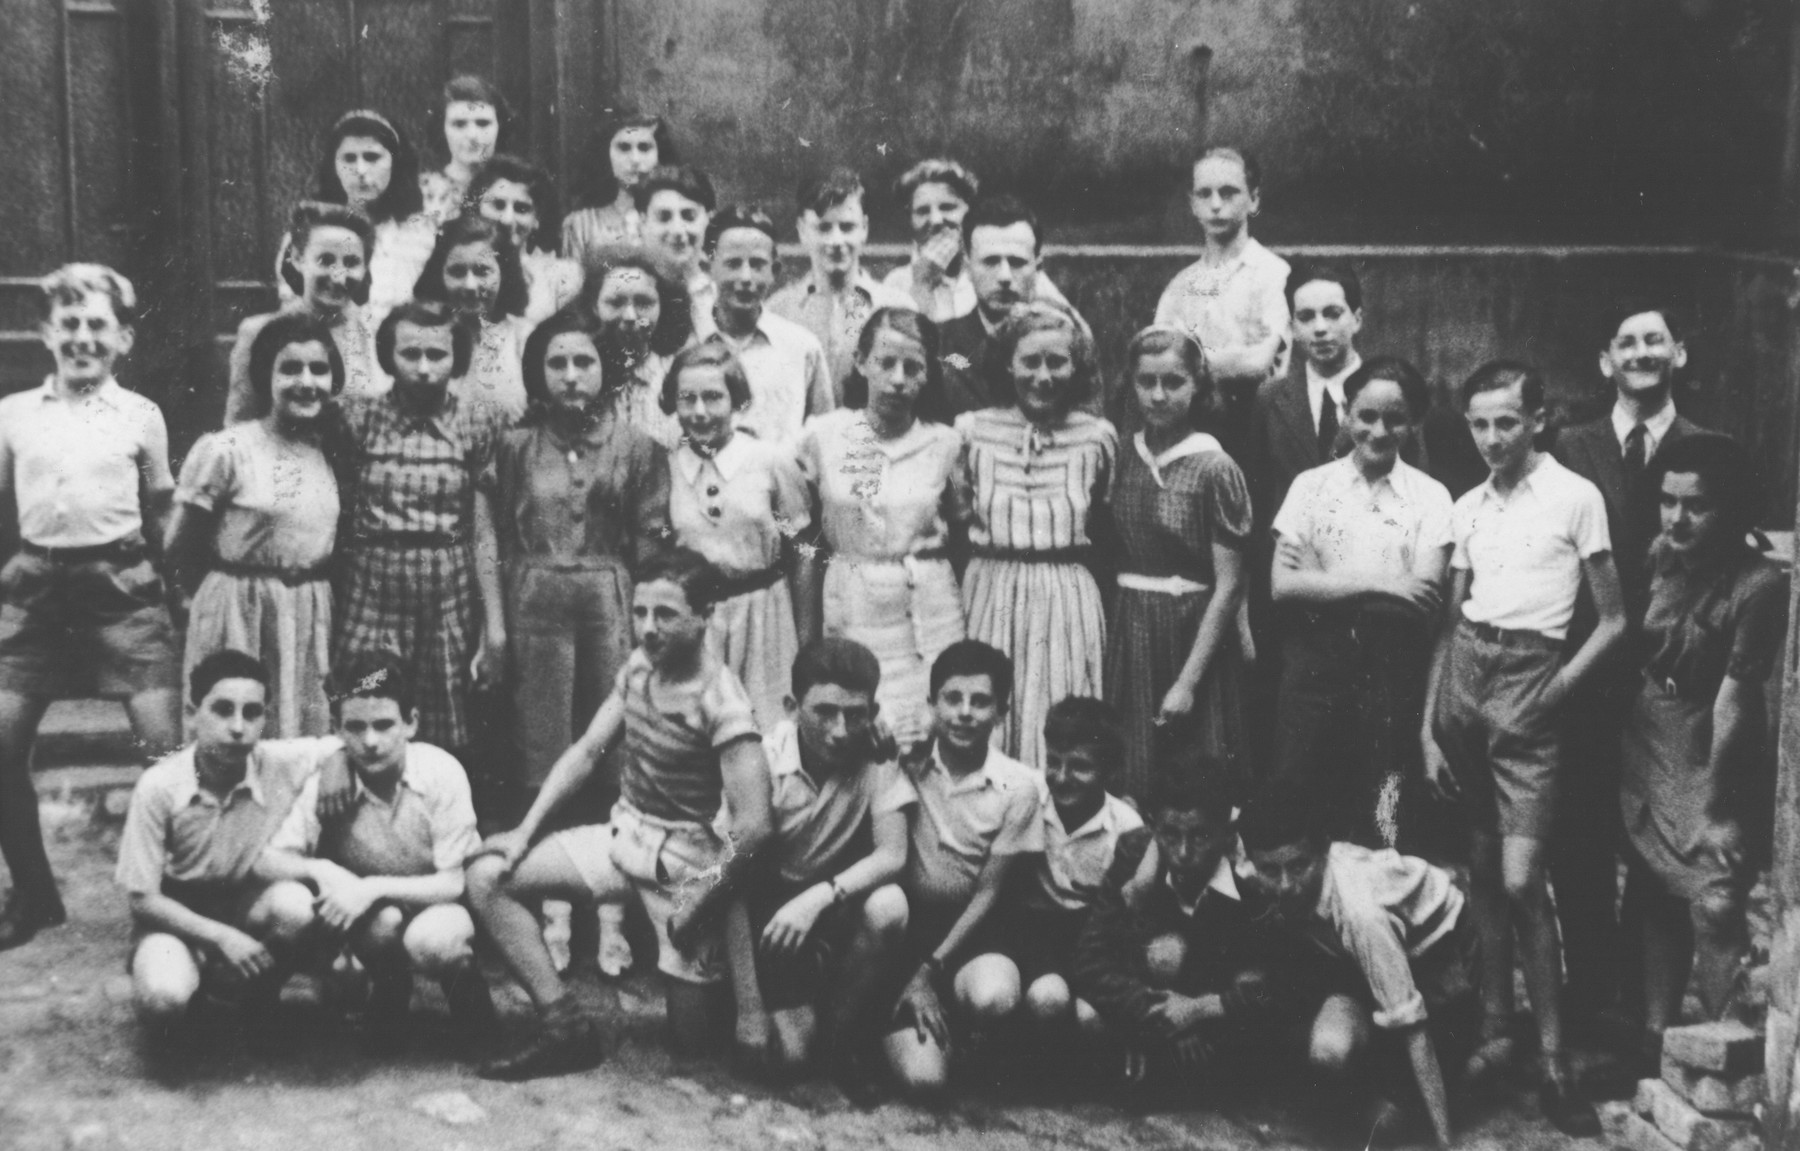 Group portrait of students at the Jewish school in Prague.